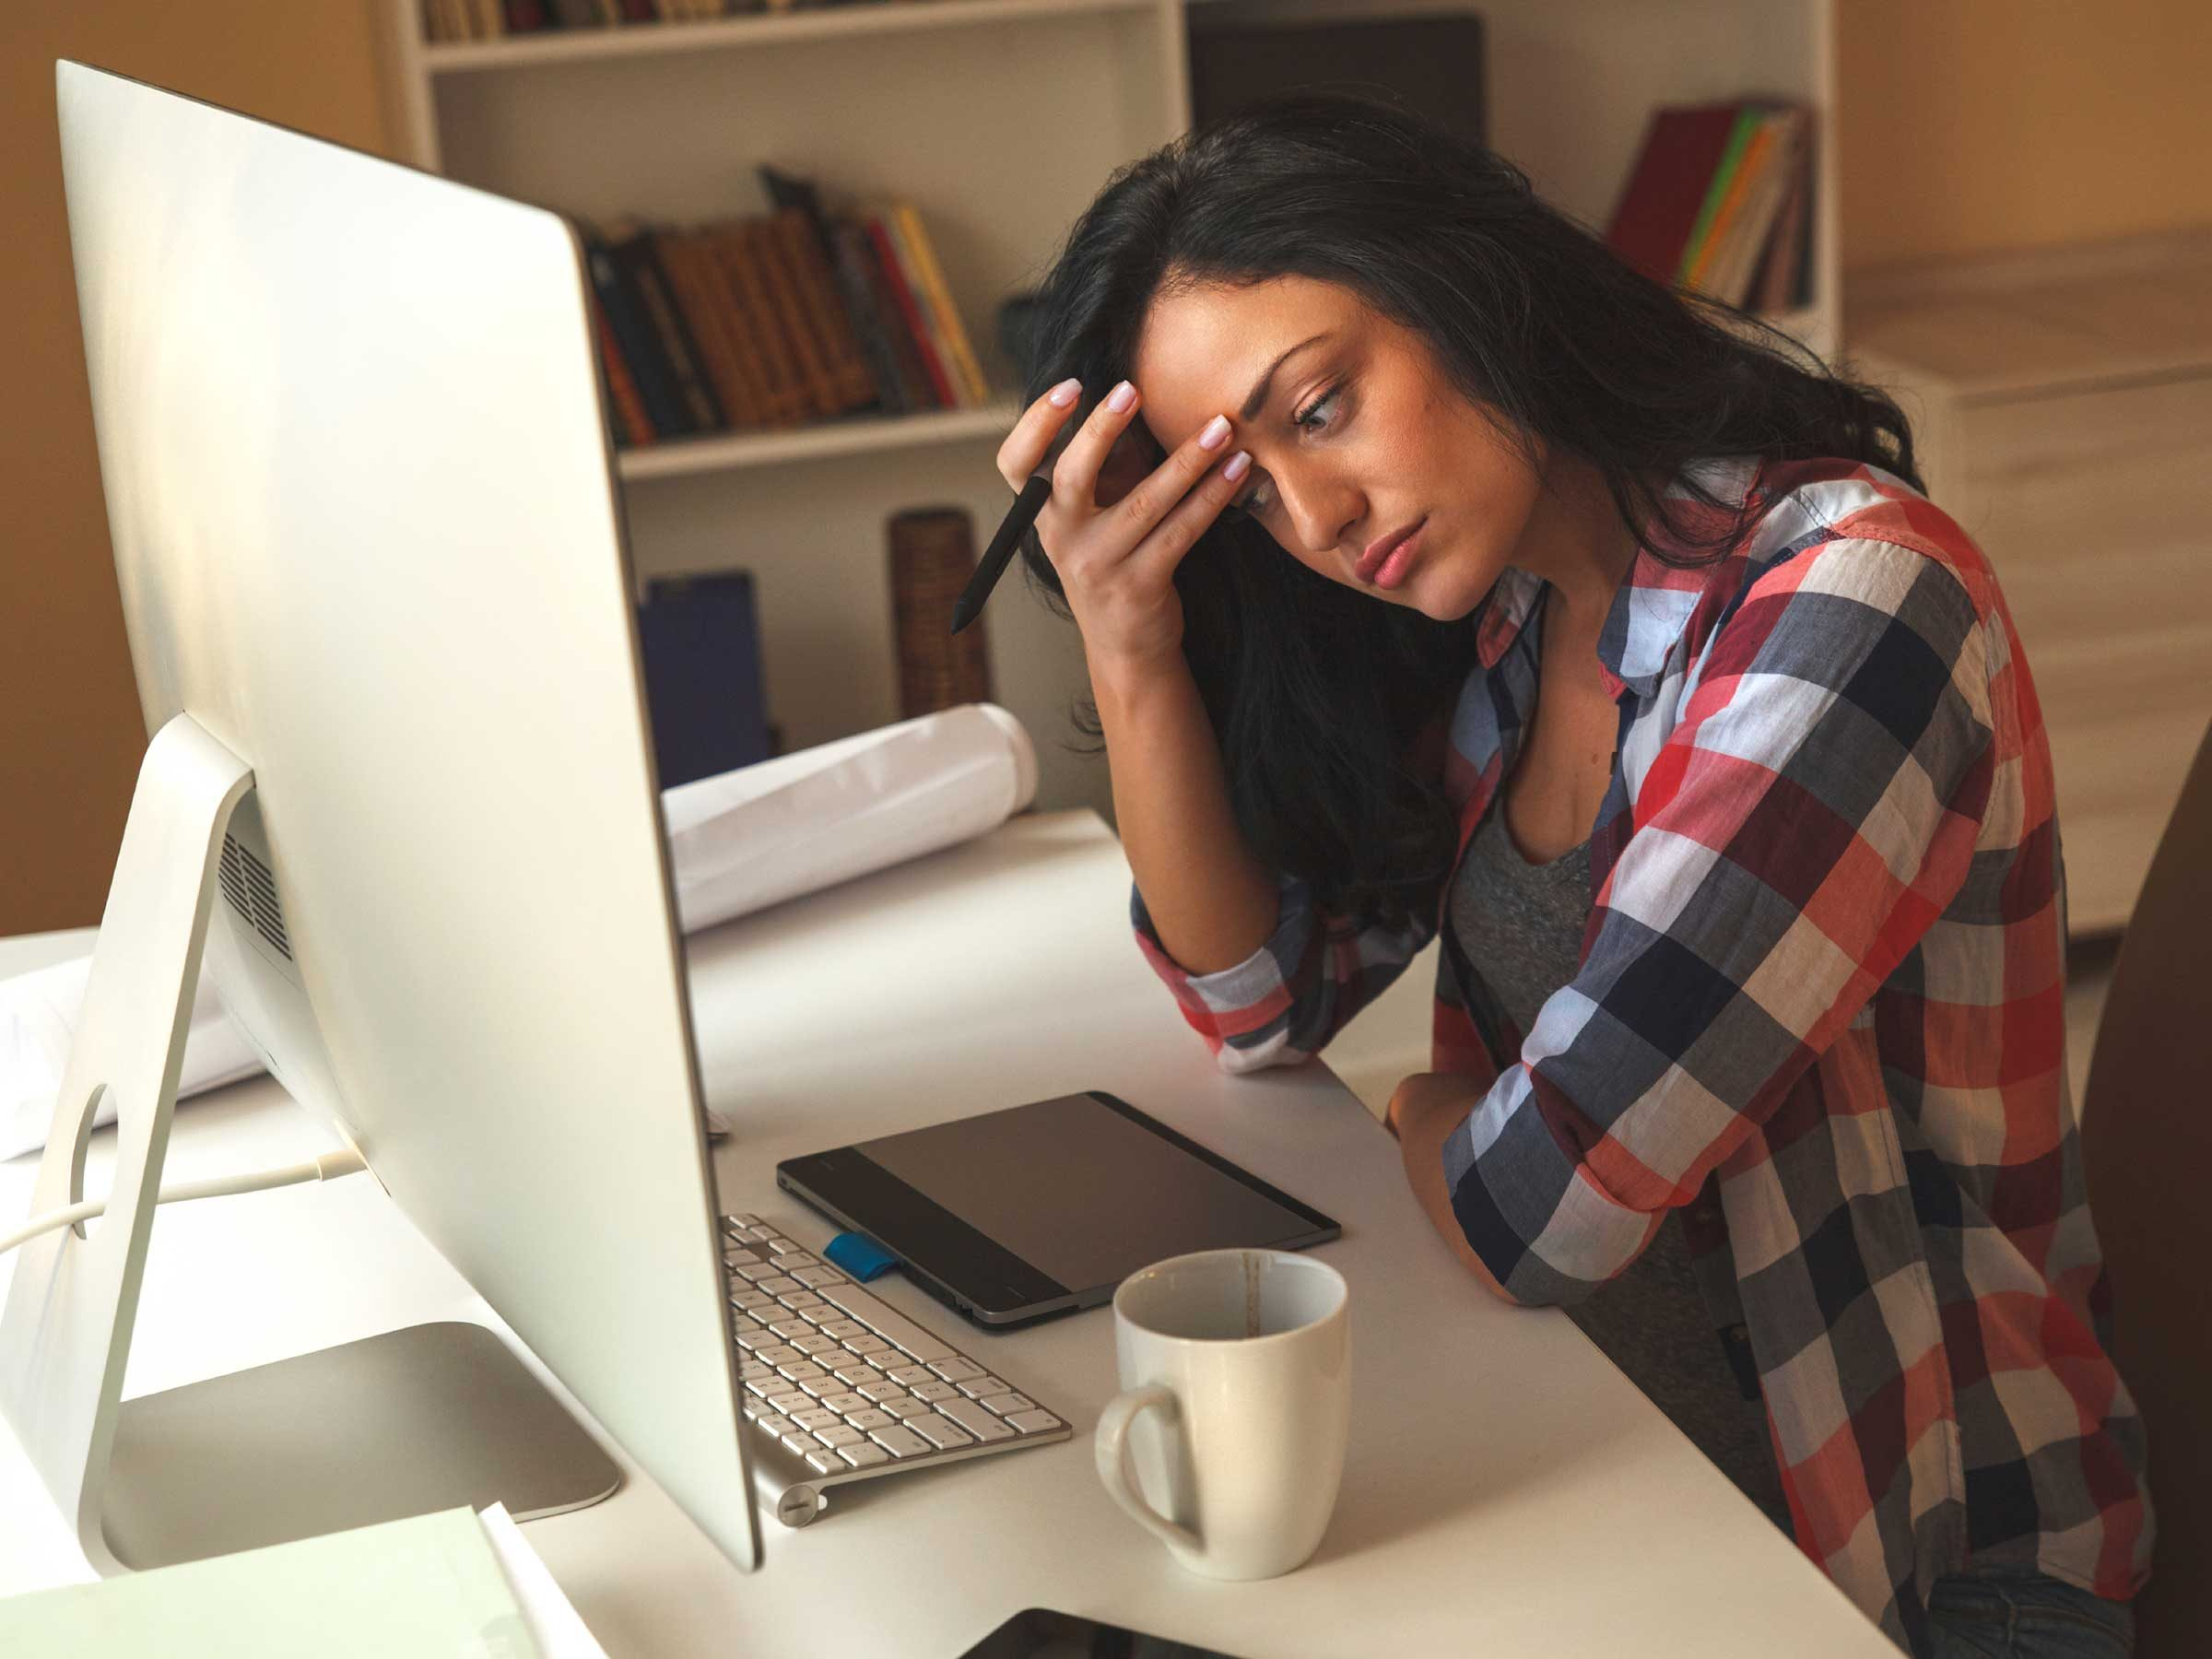 woman looking stressed in front of a computer monitor